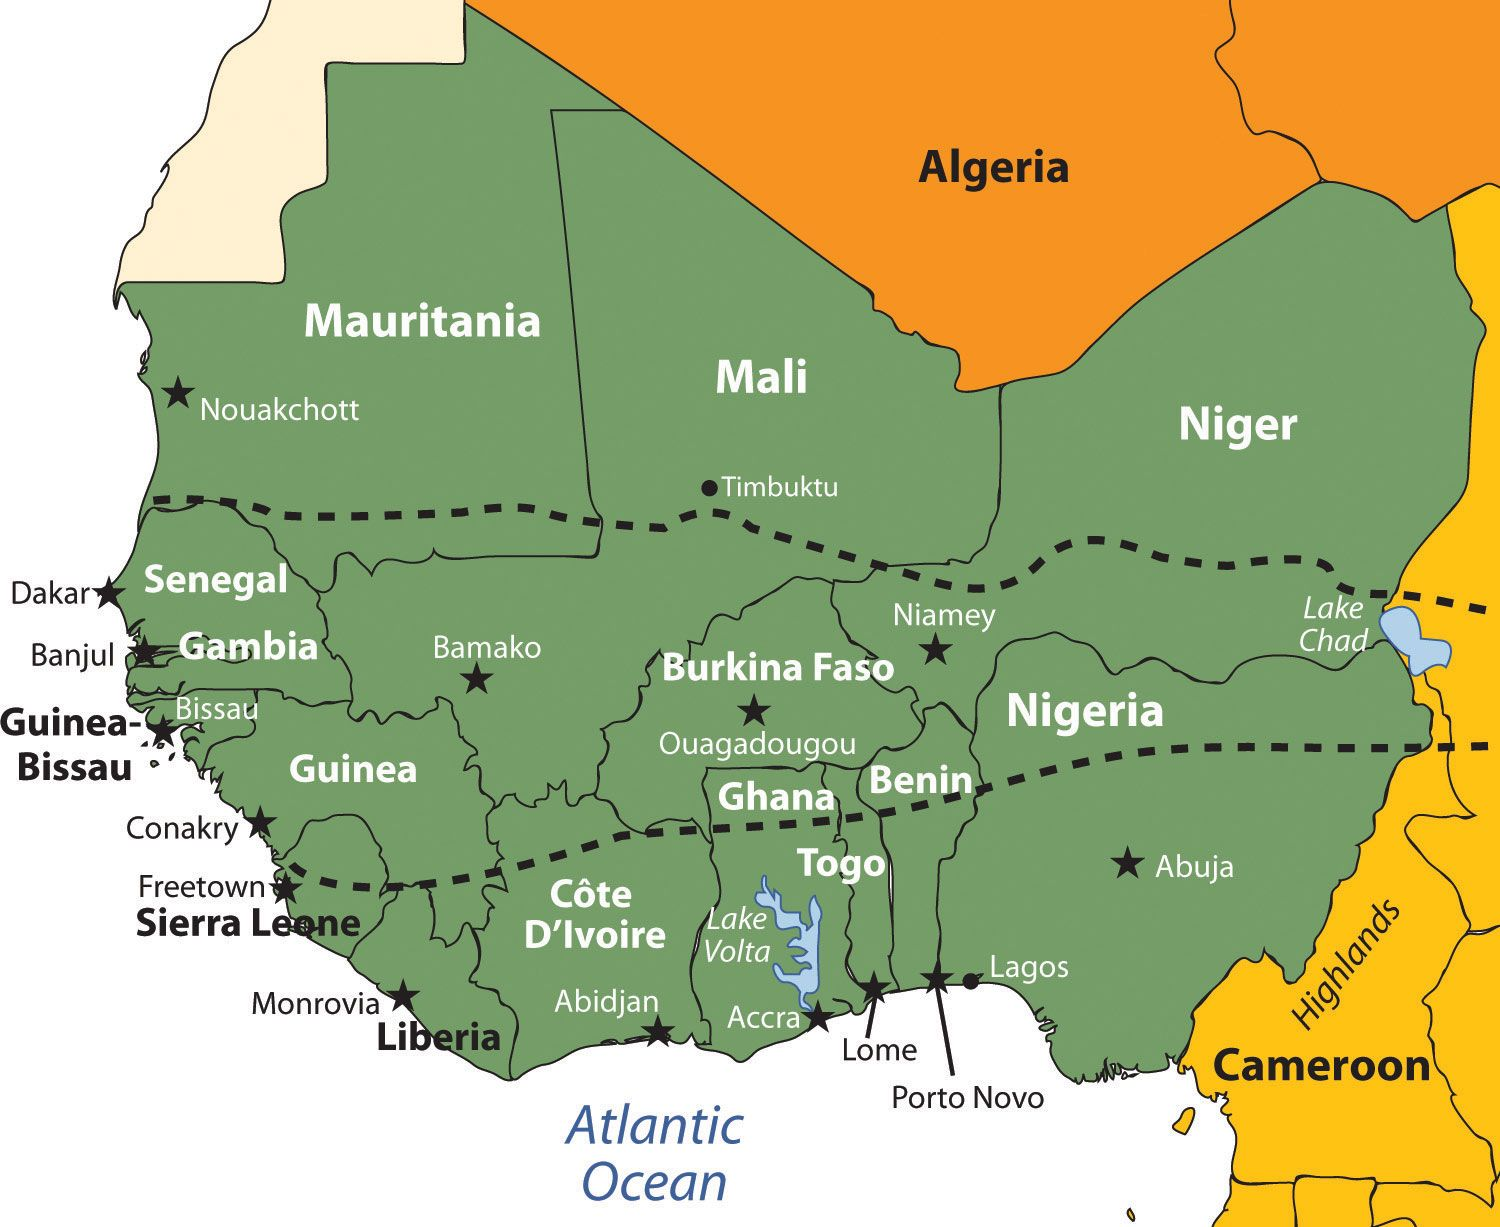 west africa vs swahili city states Spread of islam in west africa islam reached the savannah region in the 8th century ce, the date the written history of west africa begins the muslim-arab historians began to write about west africa in the early 8th century.